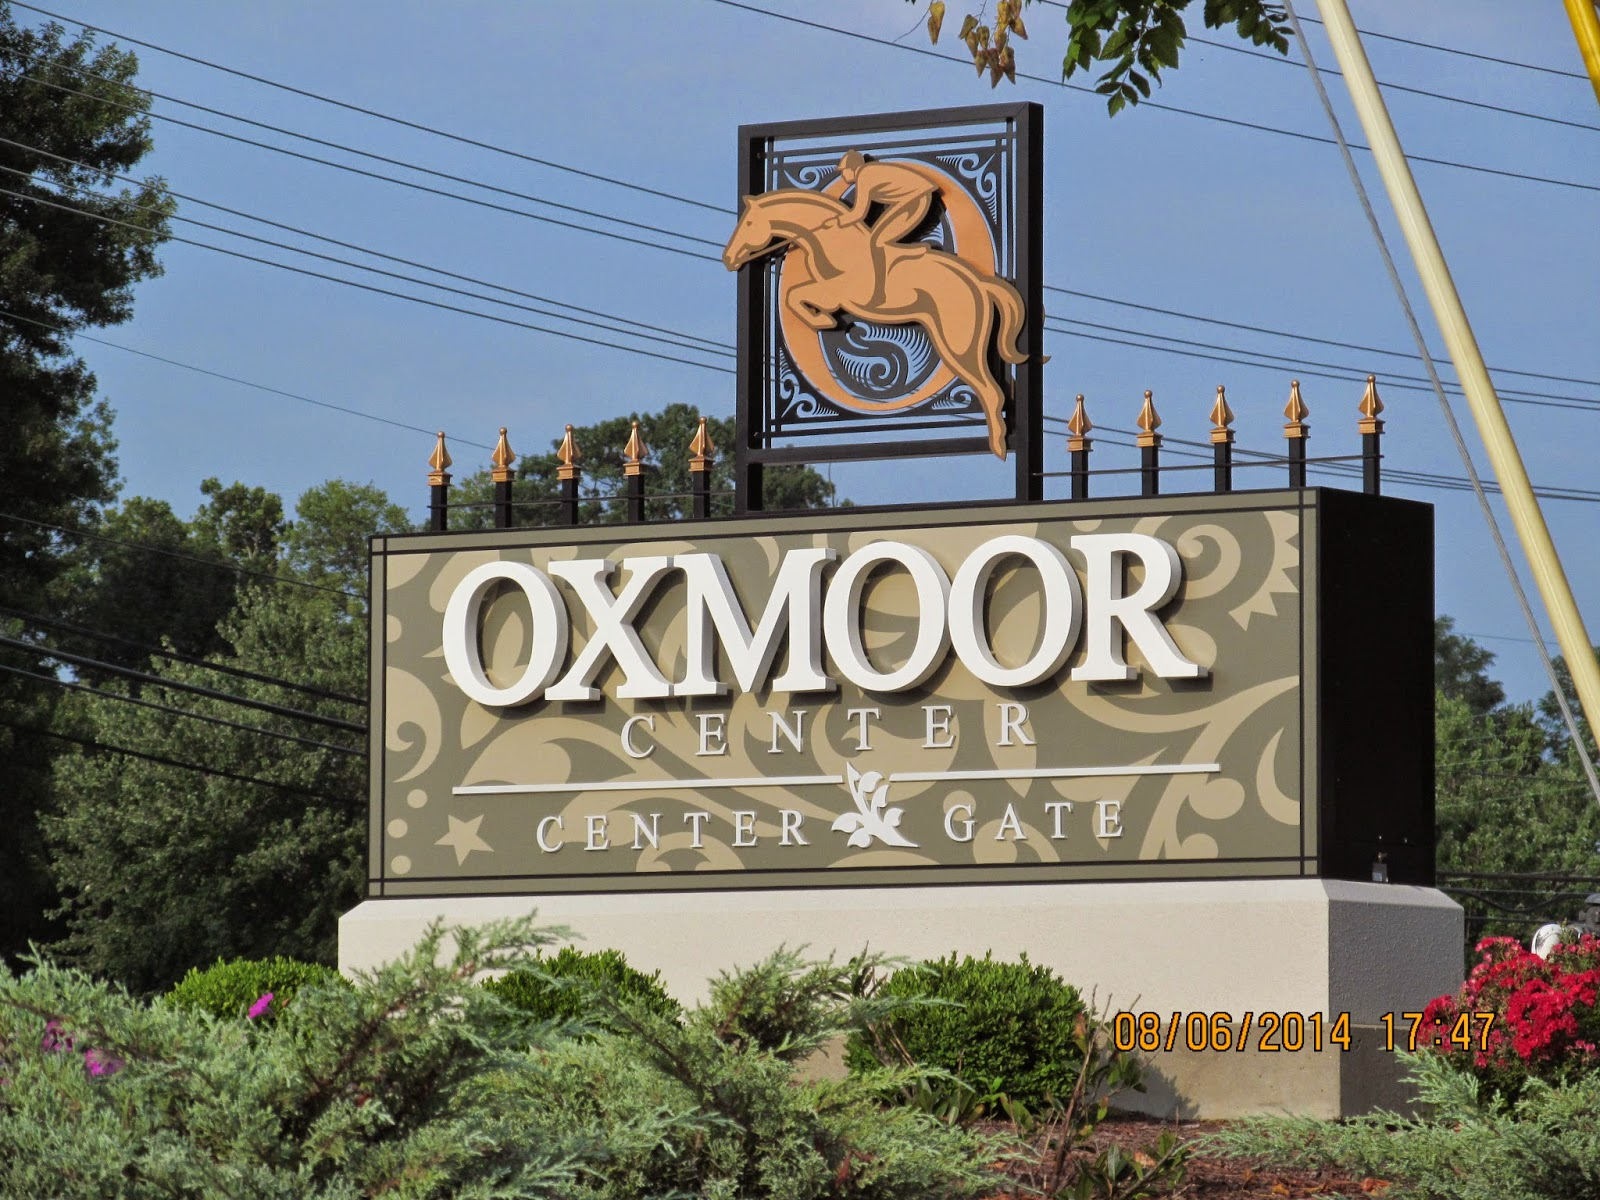 Oxmoor center is a mid size mall in suburban louisville kentucky and has anchor stores dick s sporting goods macy s sears and von maur and is one floor